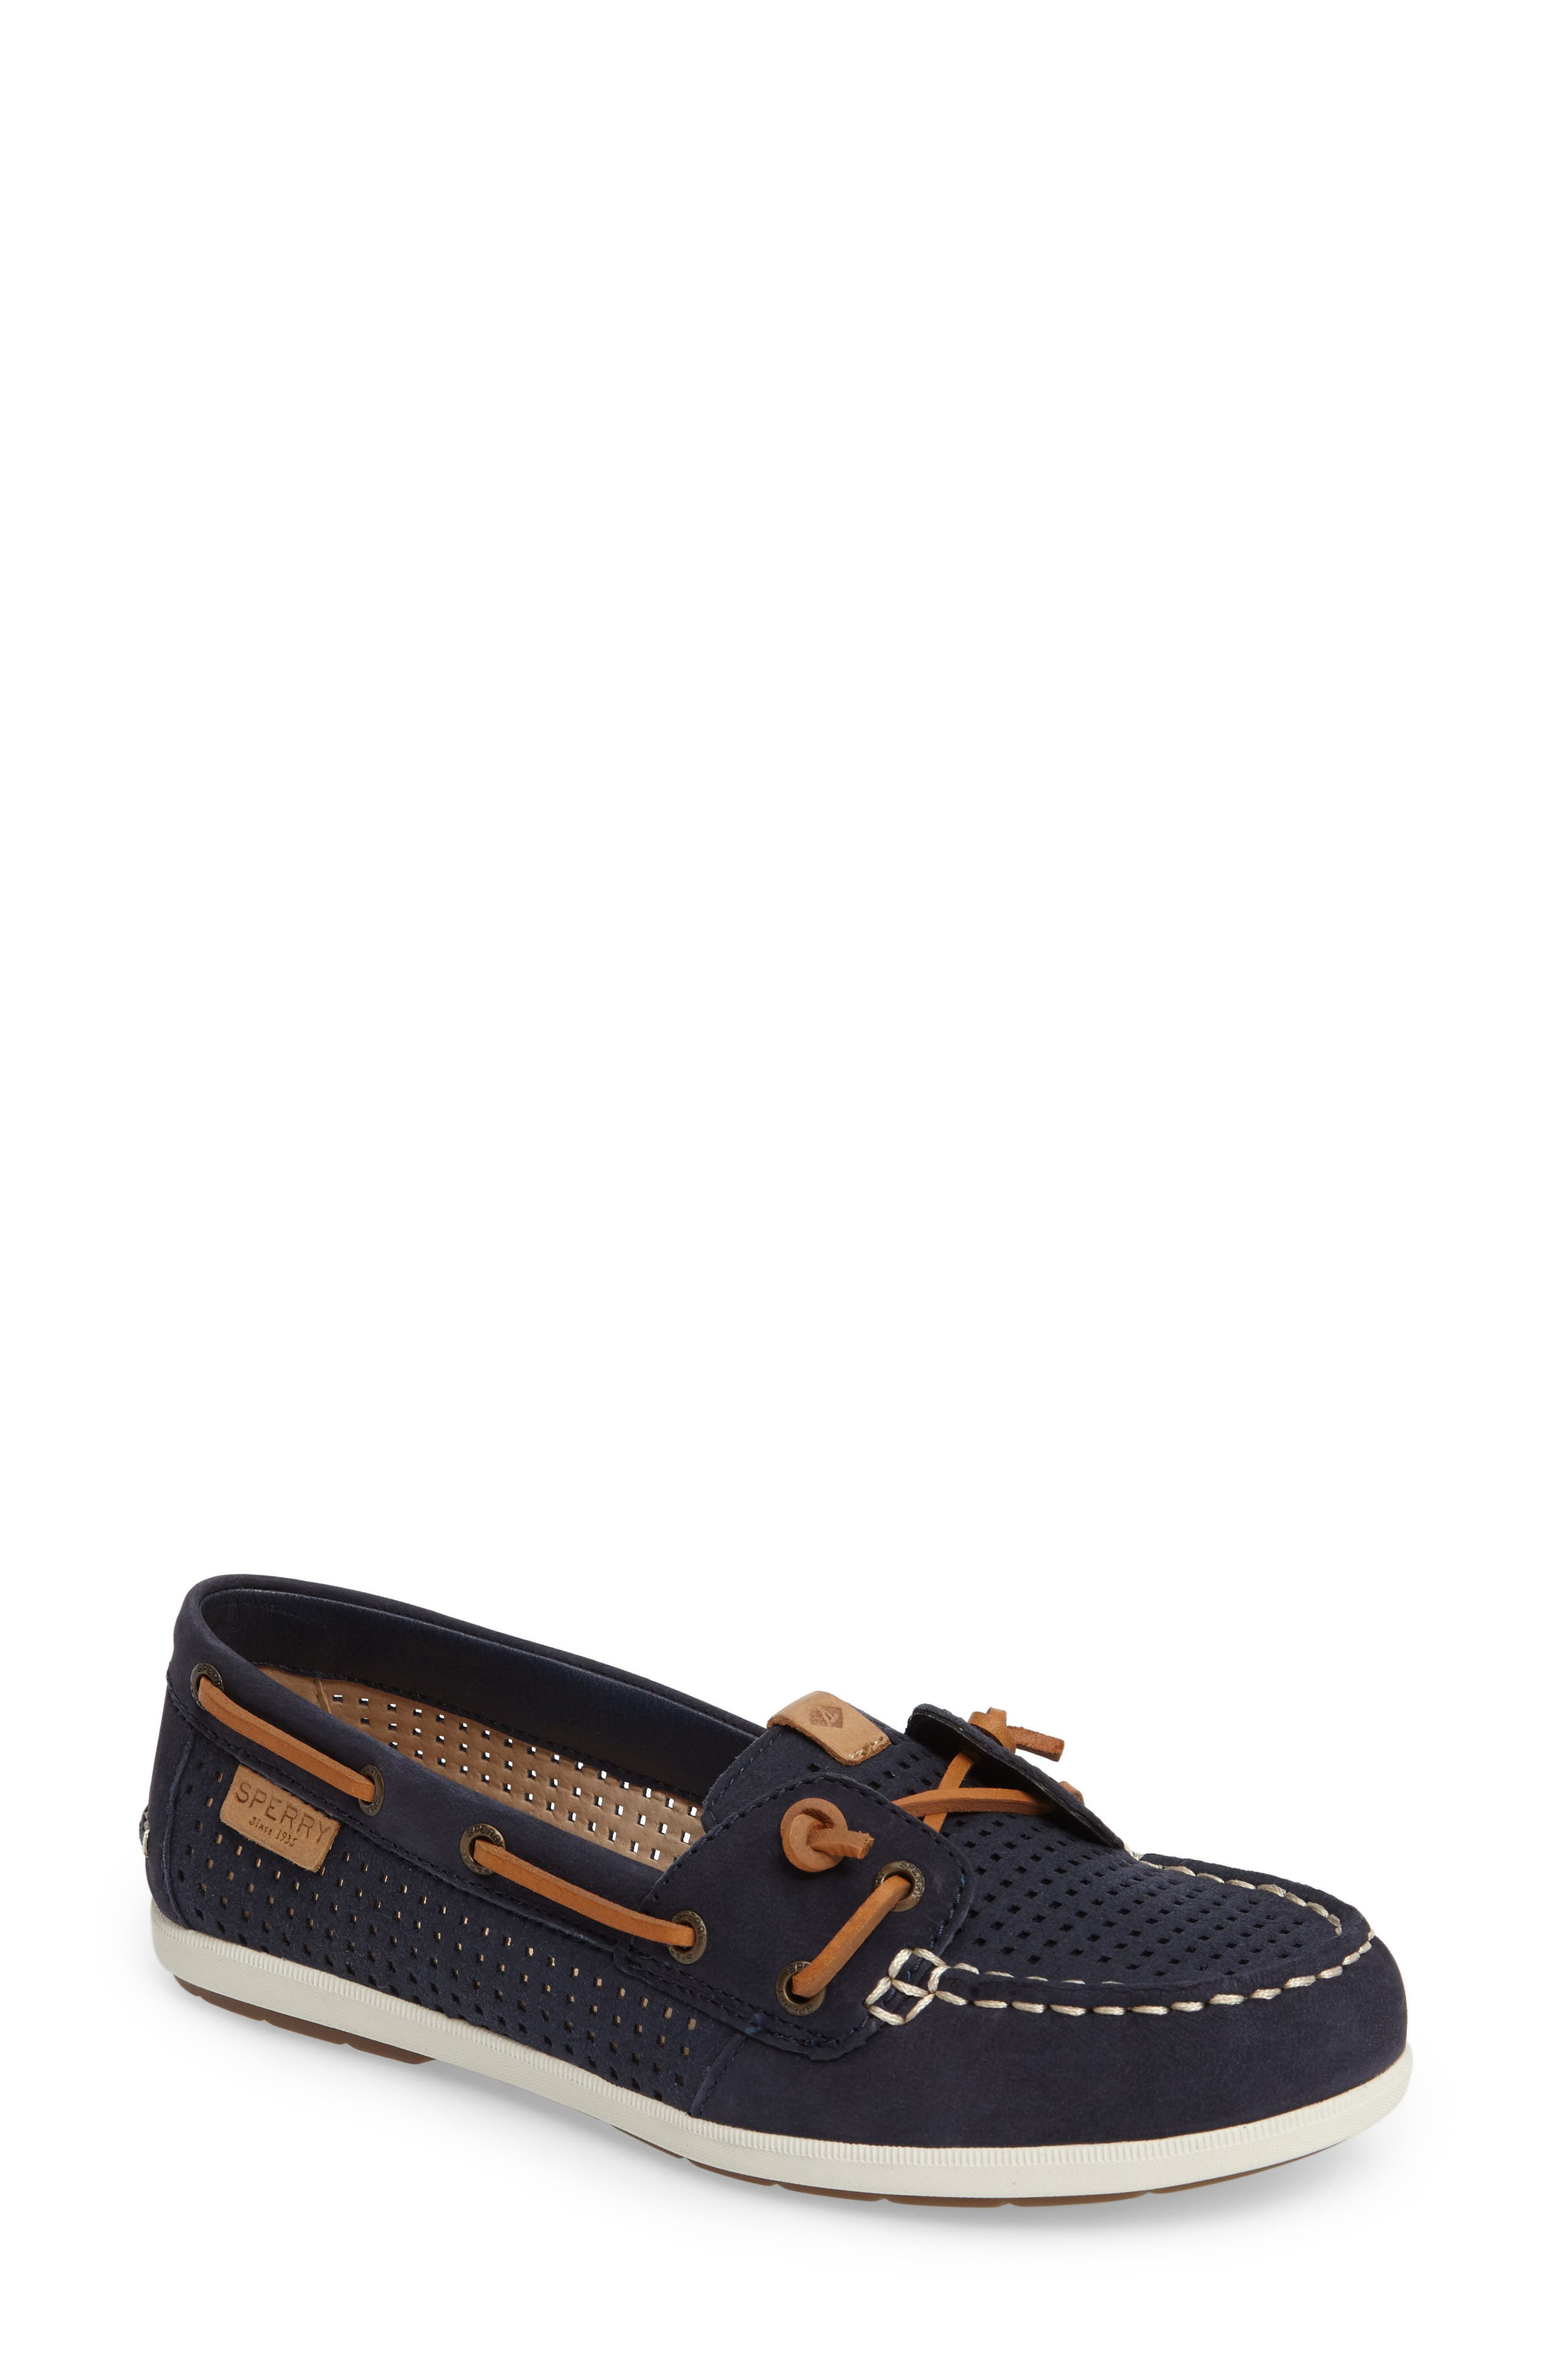 Alternate Image 1 Selected - Sperry Coil Ivy Boat Shoe (Women)